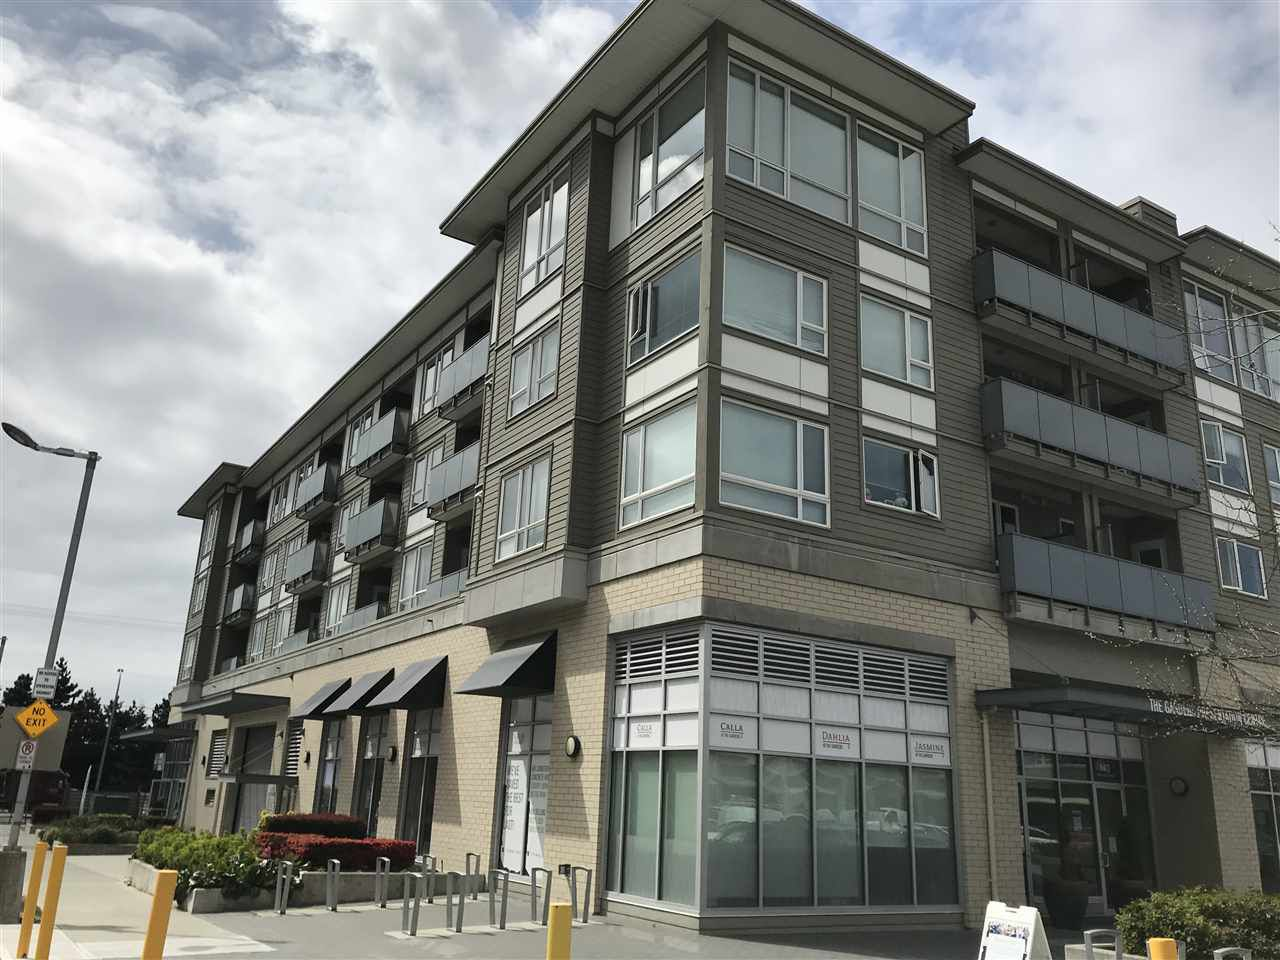 """Main Photo: 410 10880 NO. 5 Road in Richmond: Ironwood Condo for sale in """"THE GARDENS"""" : MLS®# R2368953"""